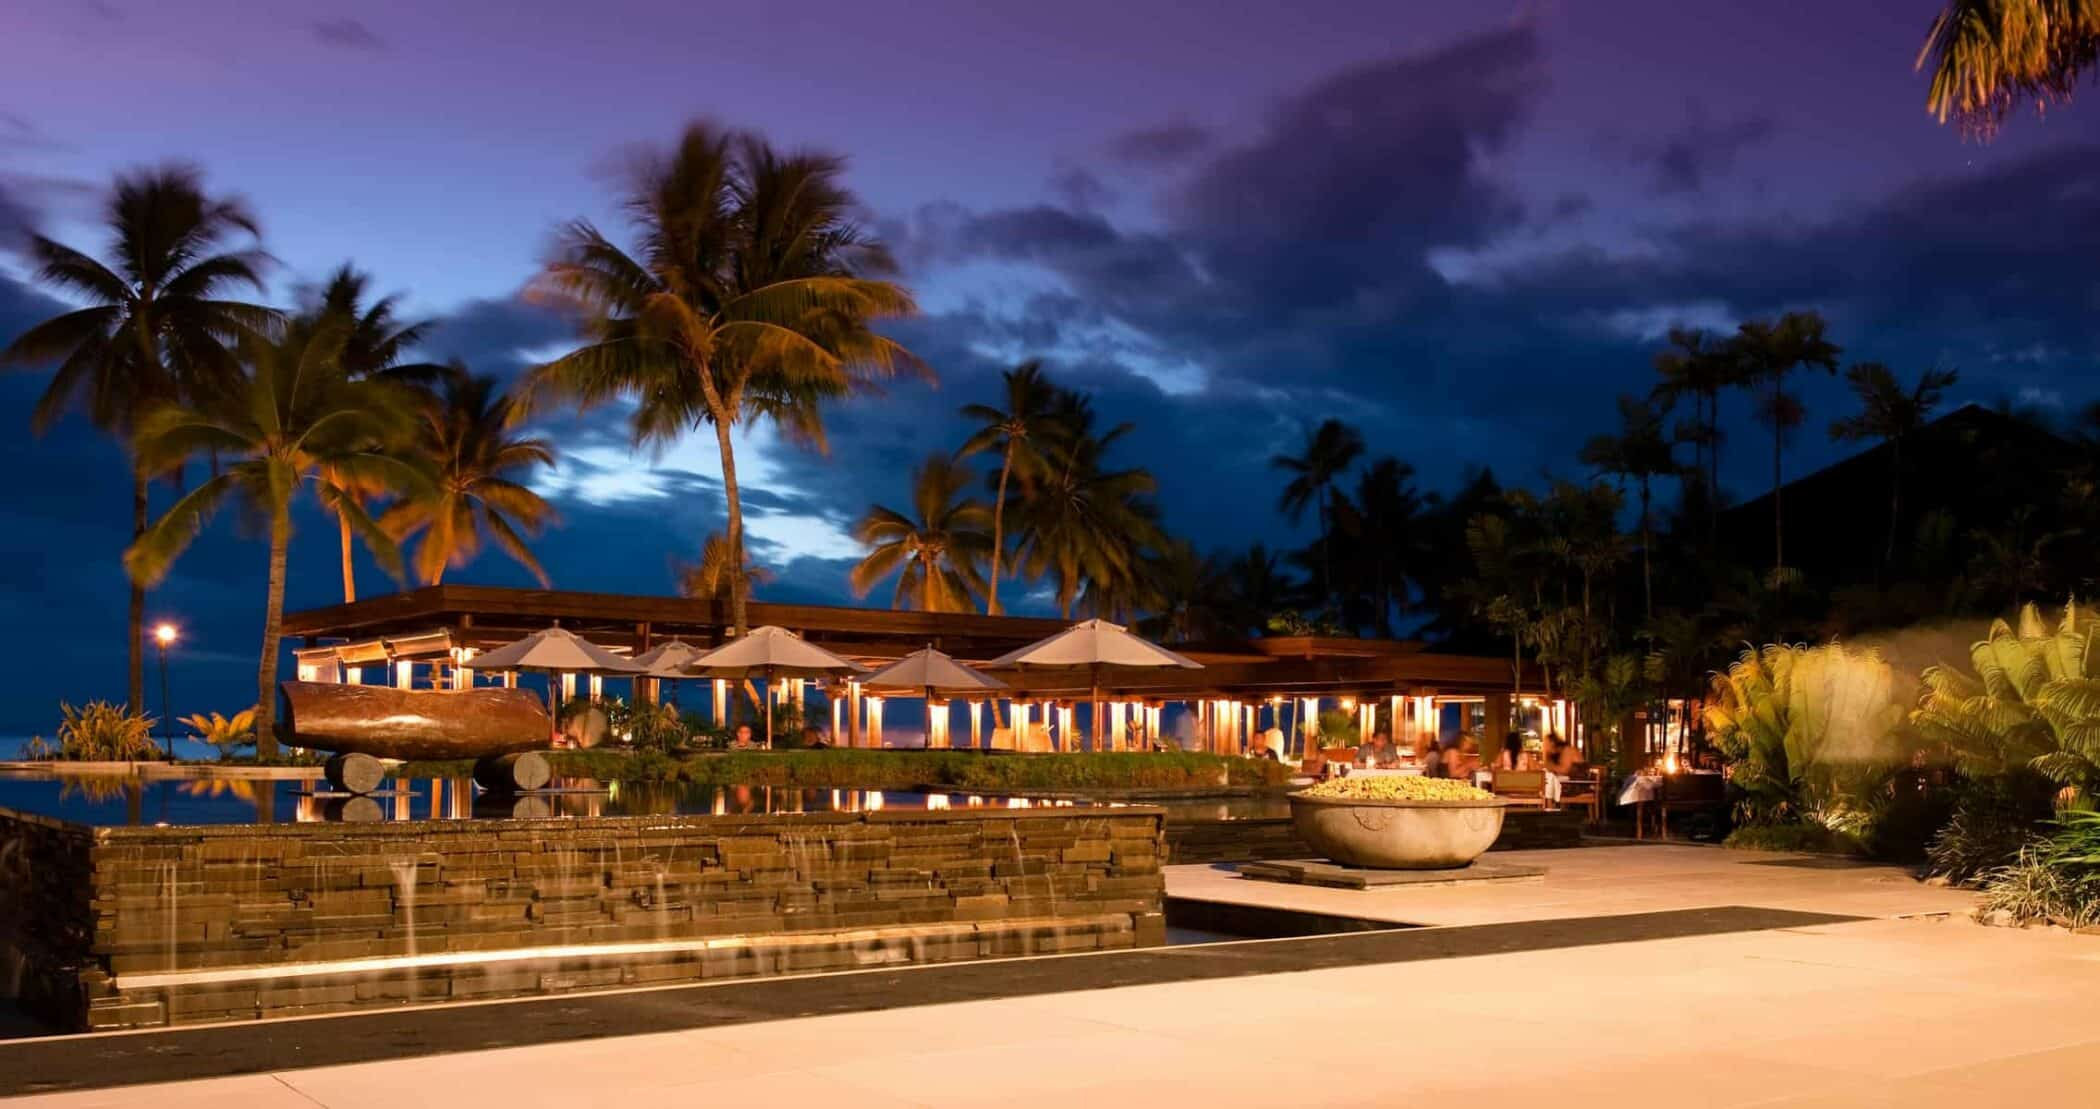 Fiji resort sunset